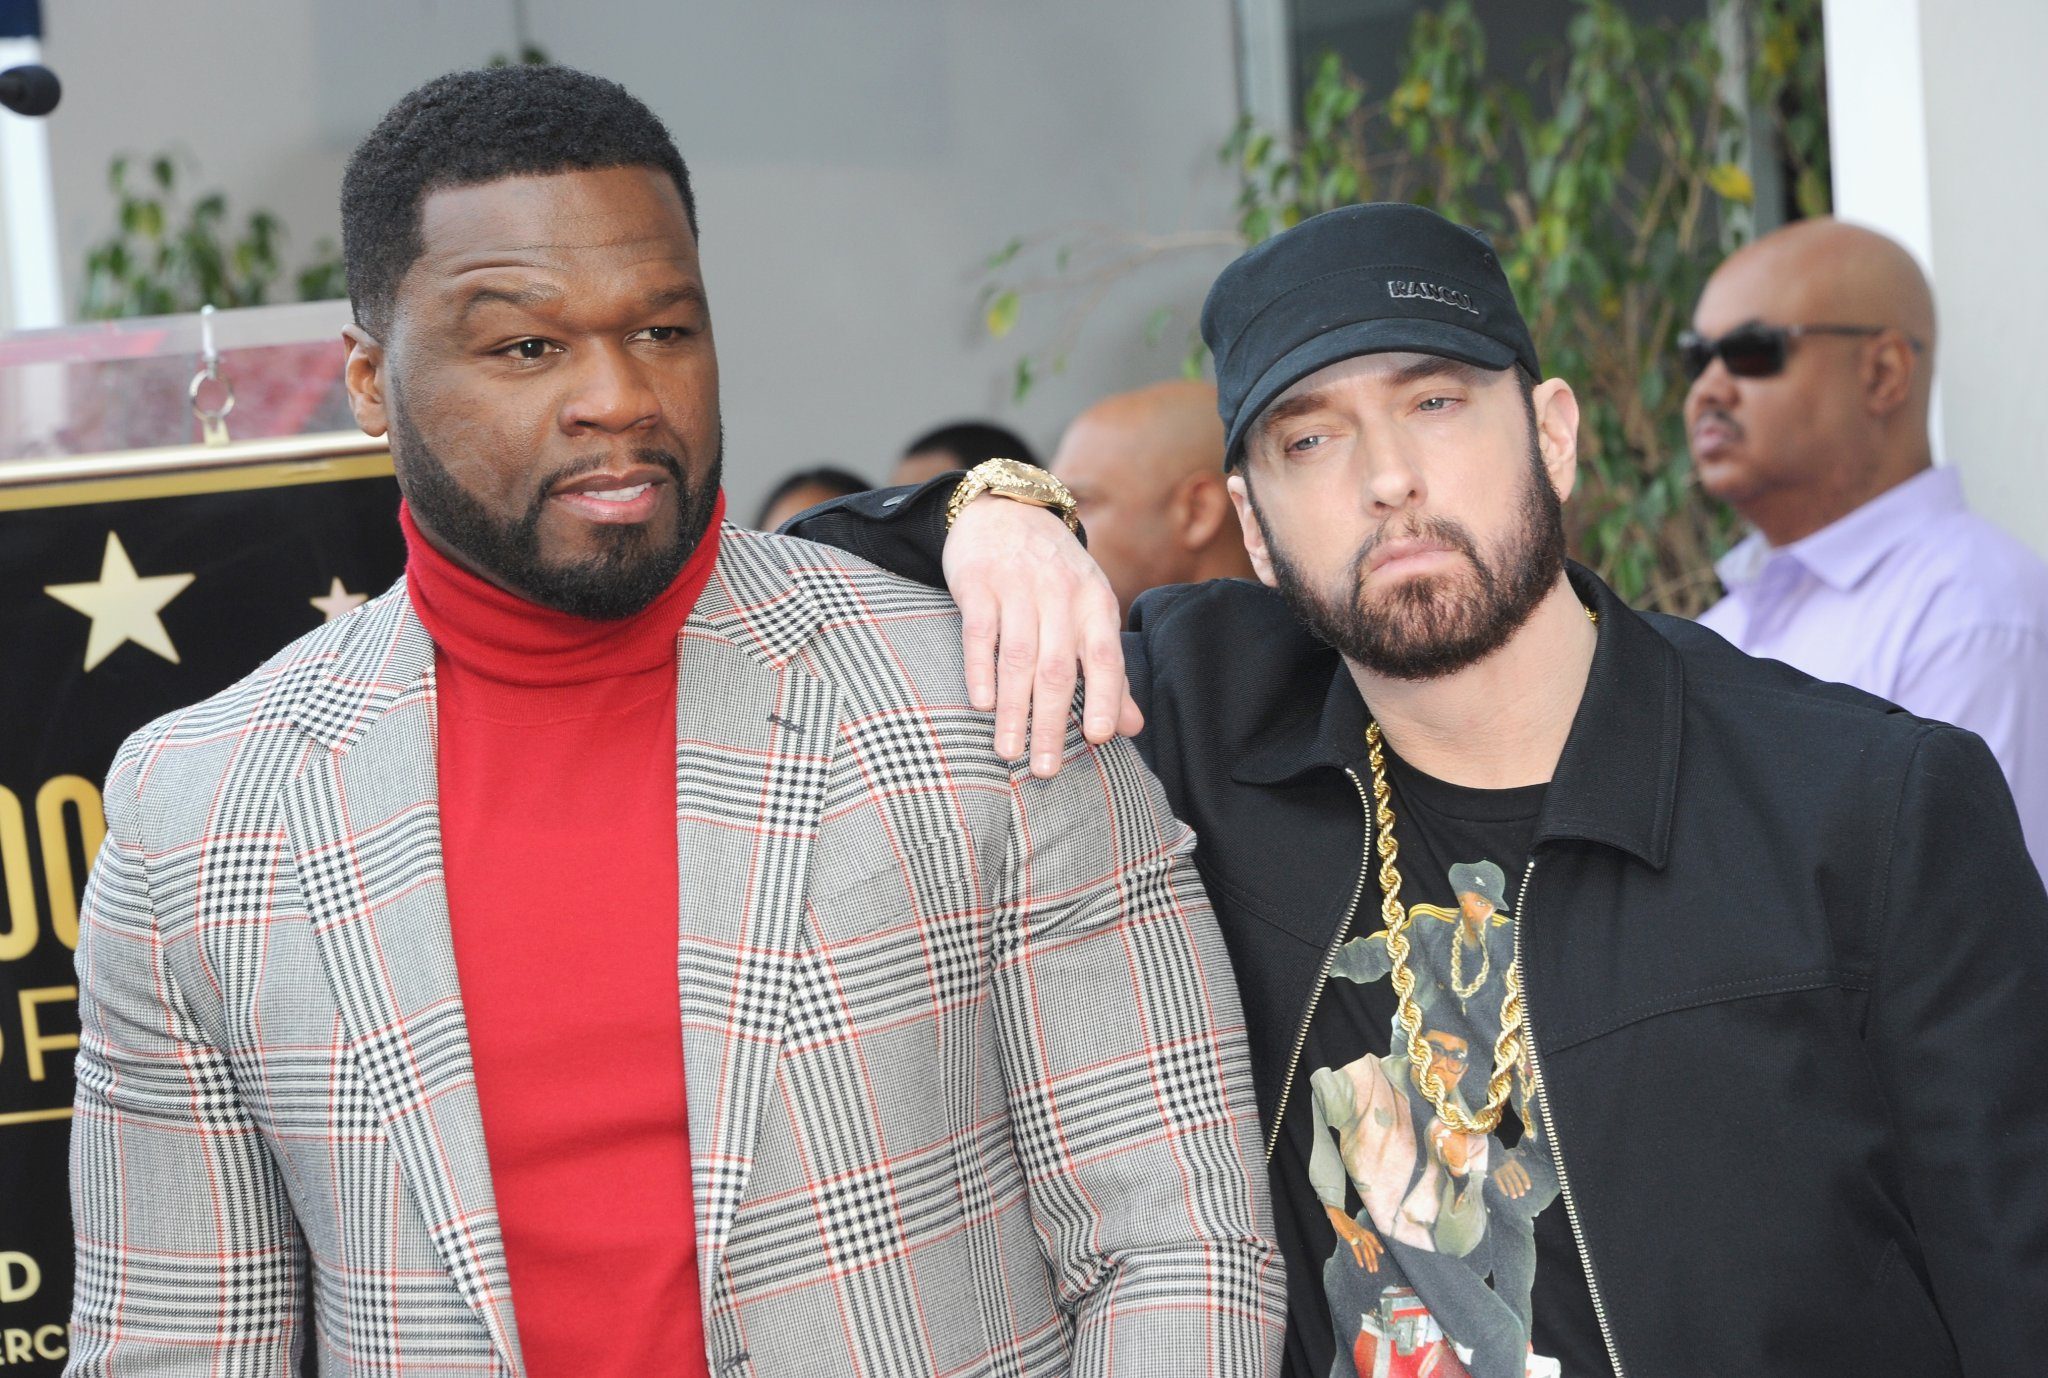 50 Cent Reveals The Heartwarming Random Texts He Receives From Eminem That Make His Day - BroBible